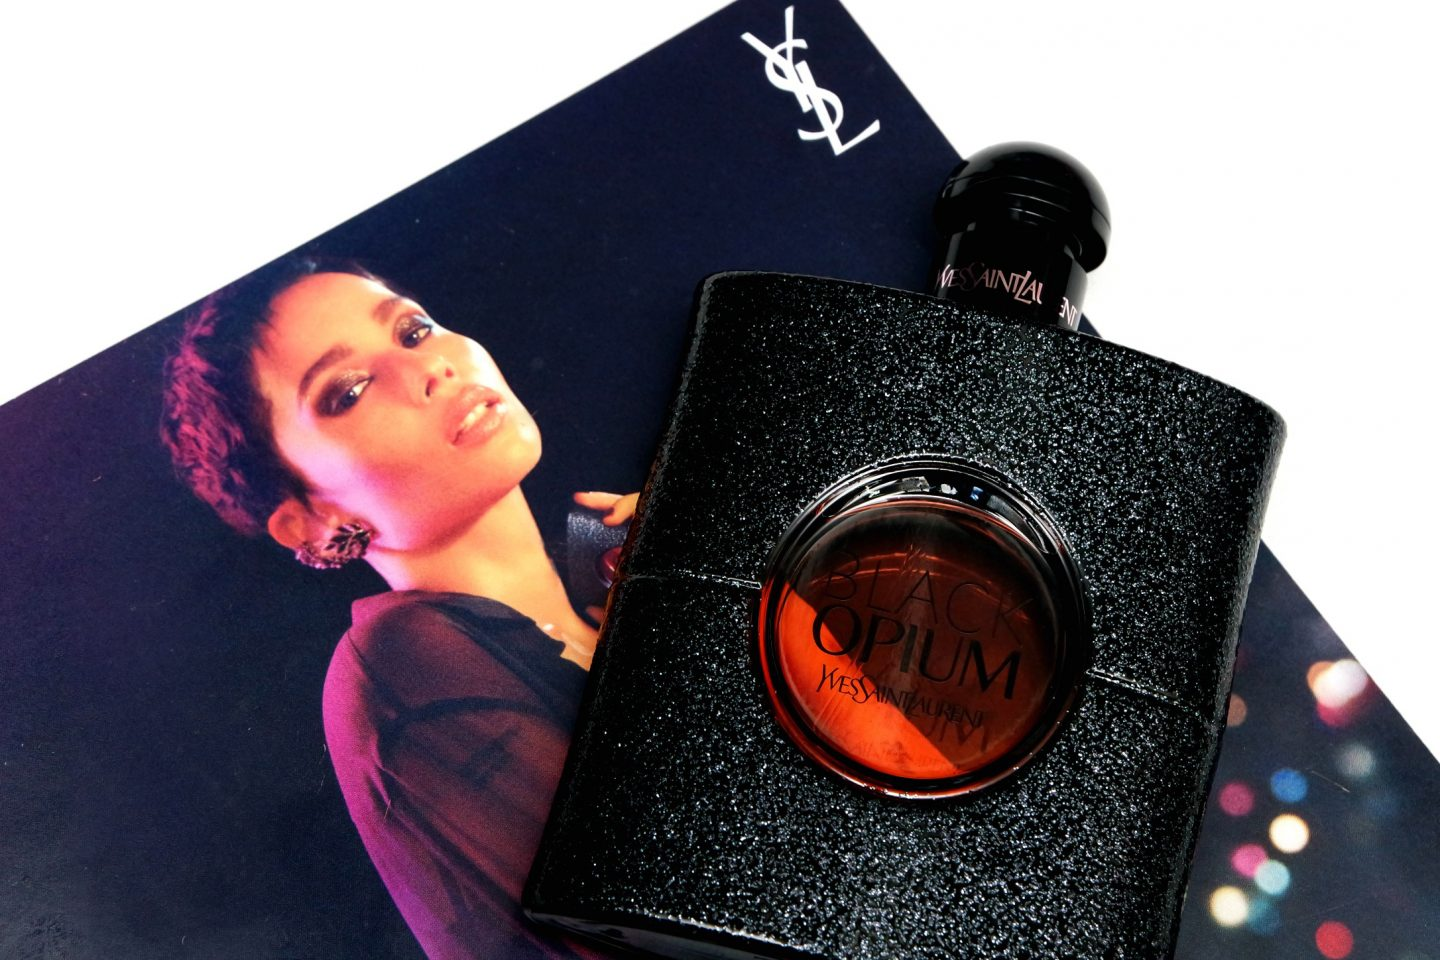 Yves Saint Laurent Black Opium Eau de Parfum Review